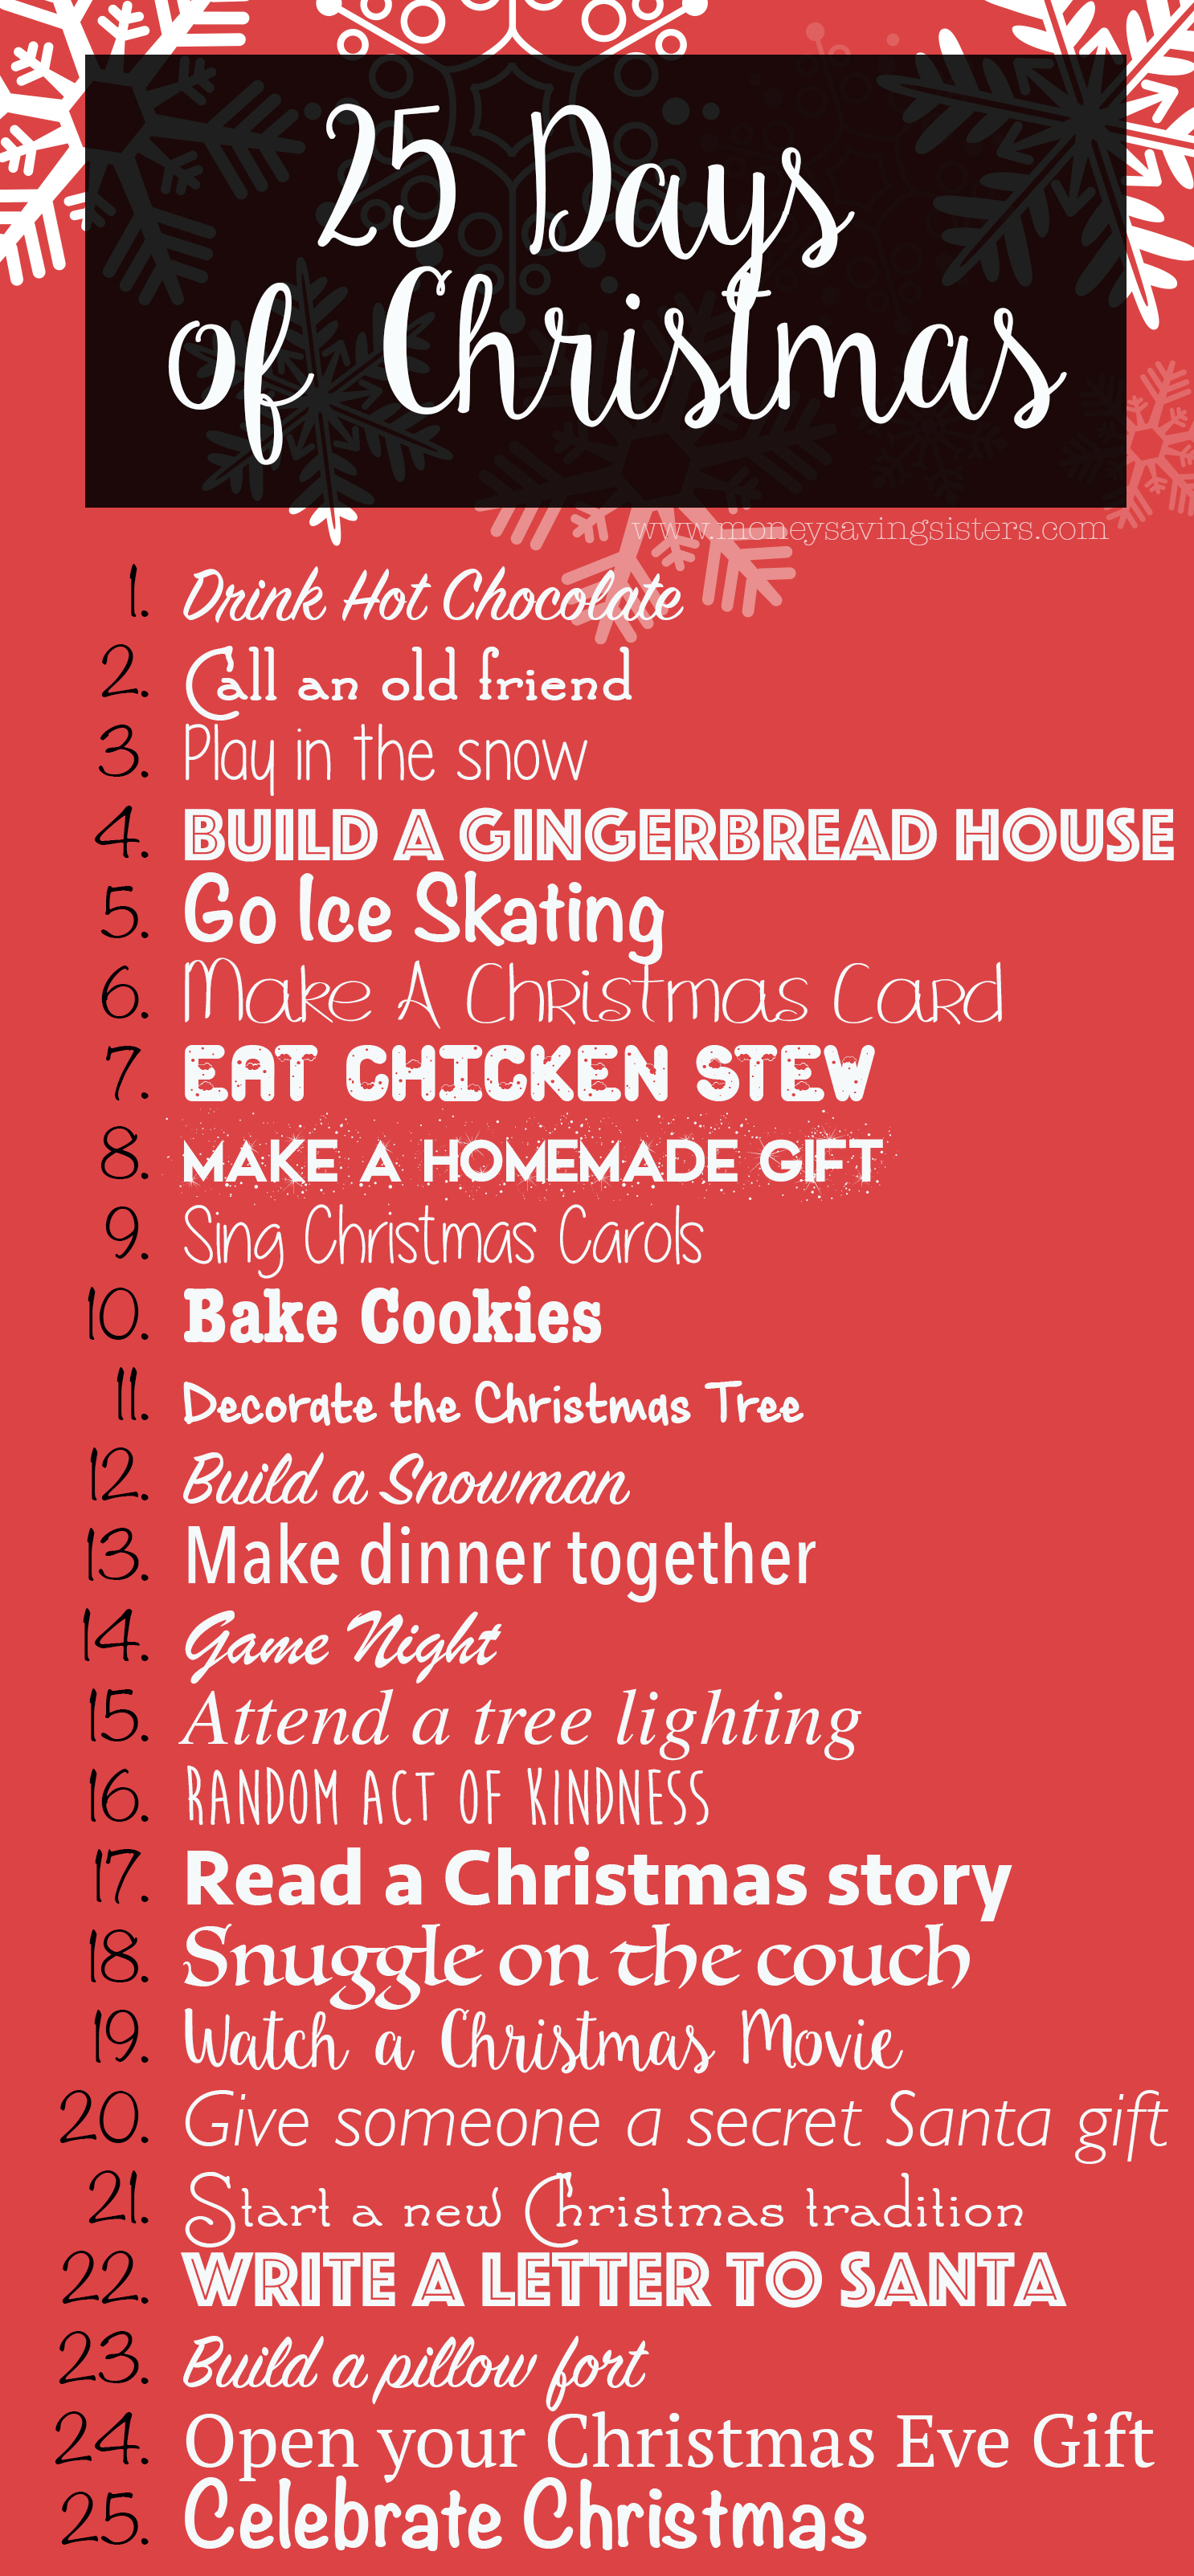 25 Days Of Christmas Activities For The Entire Family Money Saving Sisters